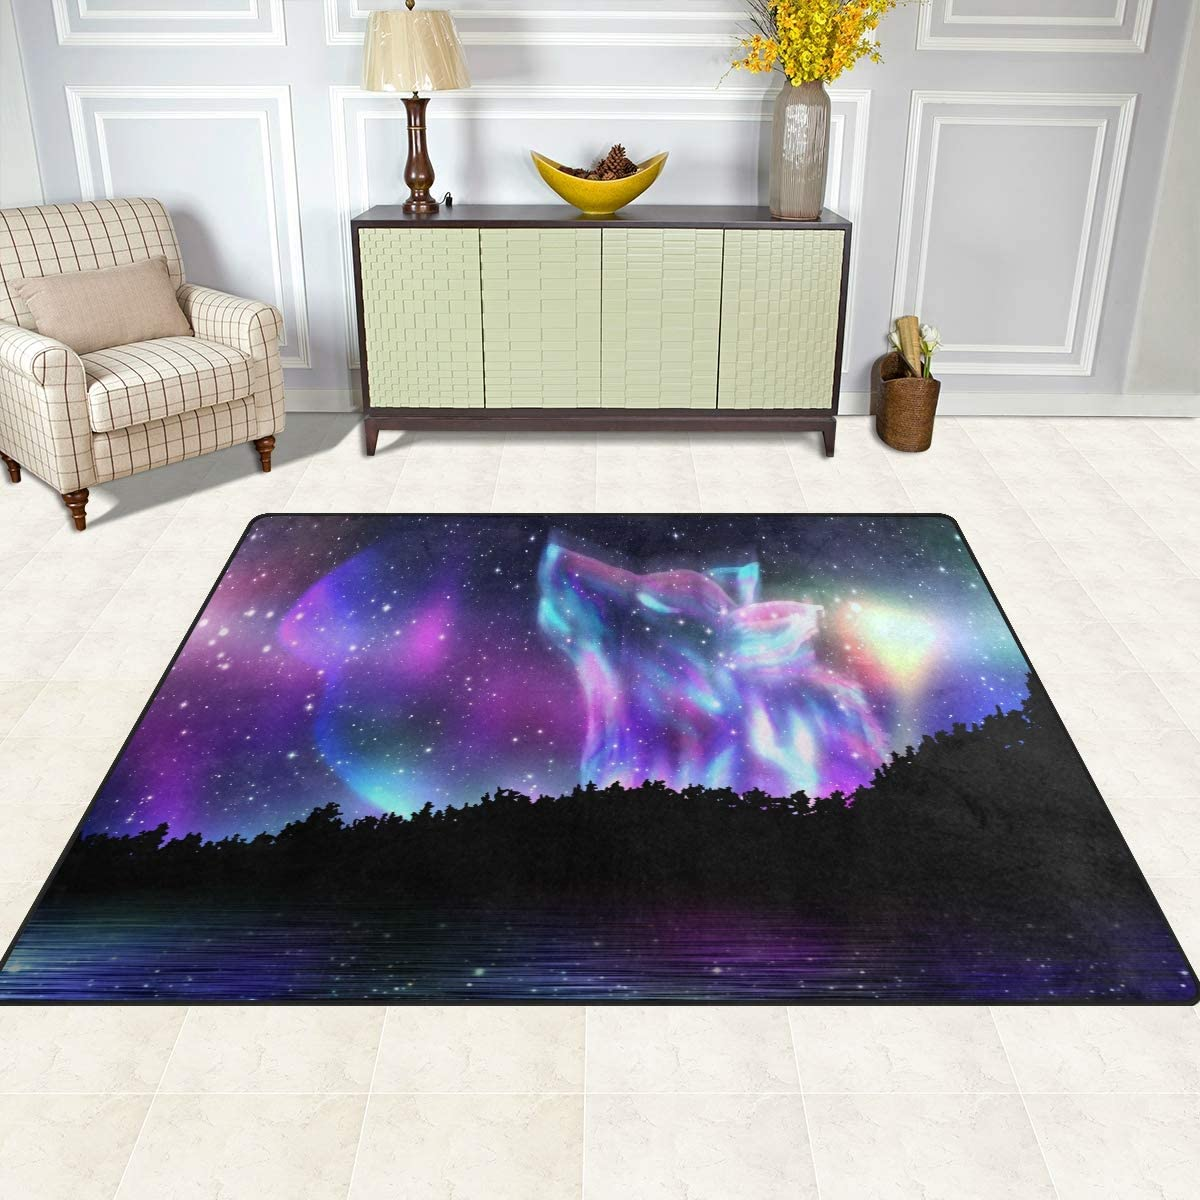 60 x 90 cm Galaxy Universe Animal Wolf Nursery Rug Floor Carpet Yoga Mat 2 x 3 ft Naanle Galaxy Forest Wolf Non Slip Area Rug for Living Dinning Room Bedroom Kitchen